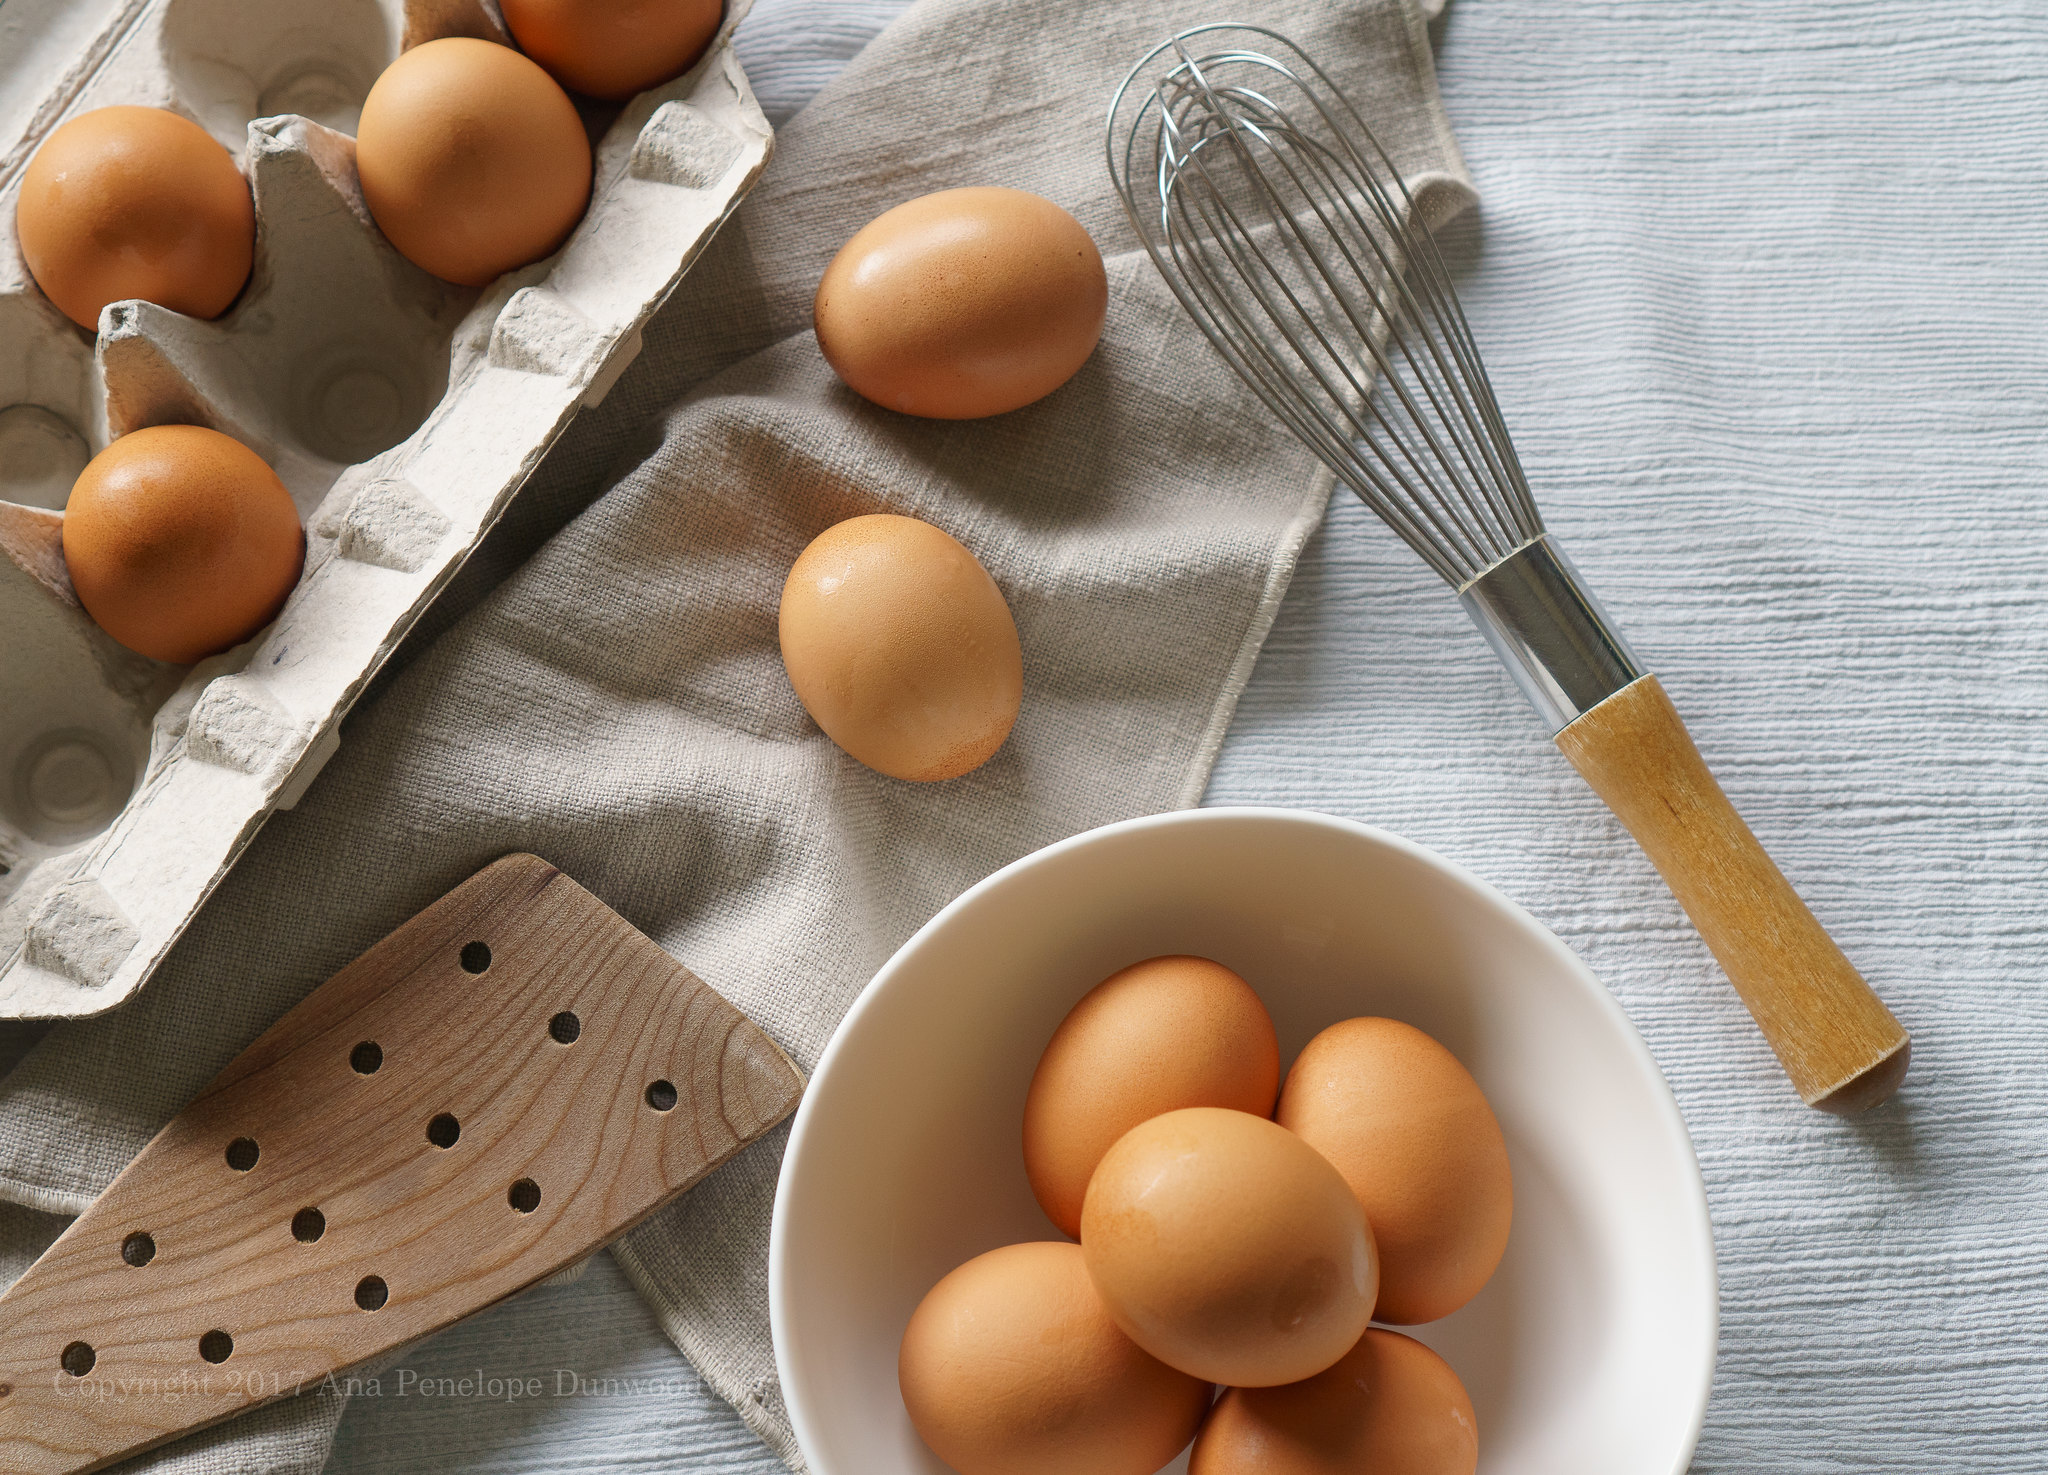 Organic Eggs and kitchen utensils